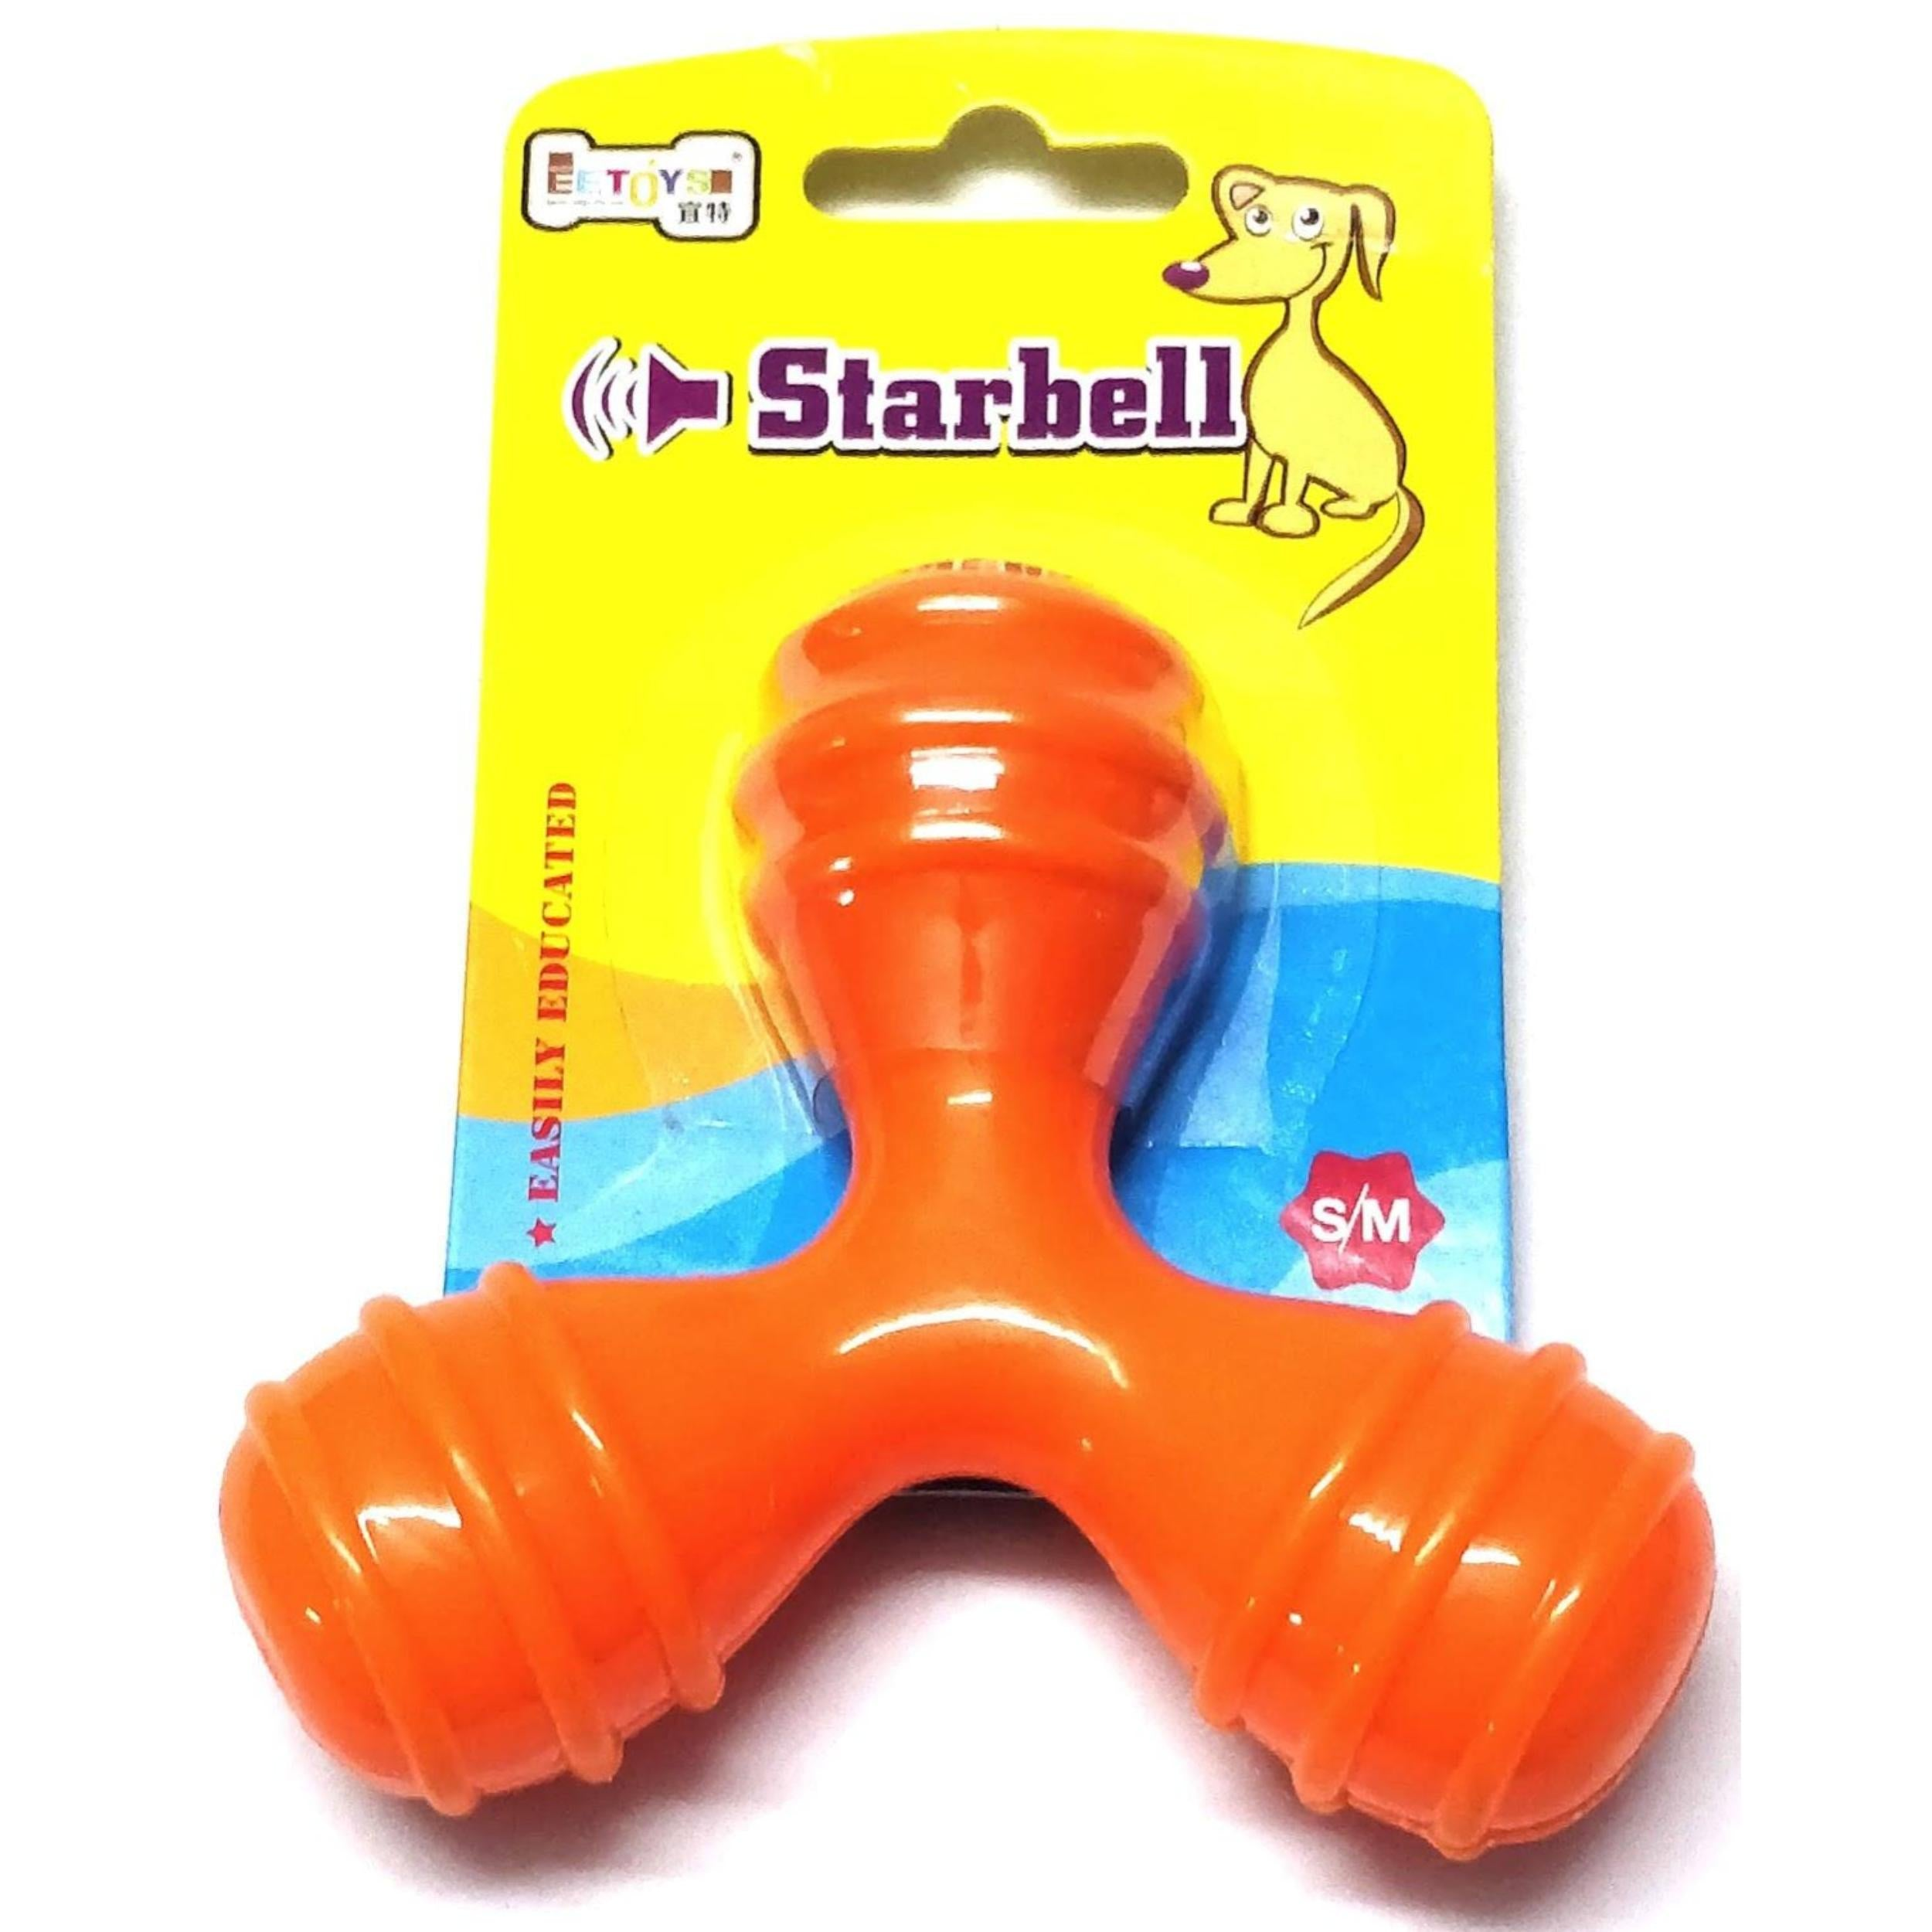 EE Starbell Interactive Fetch Toy - Poochles